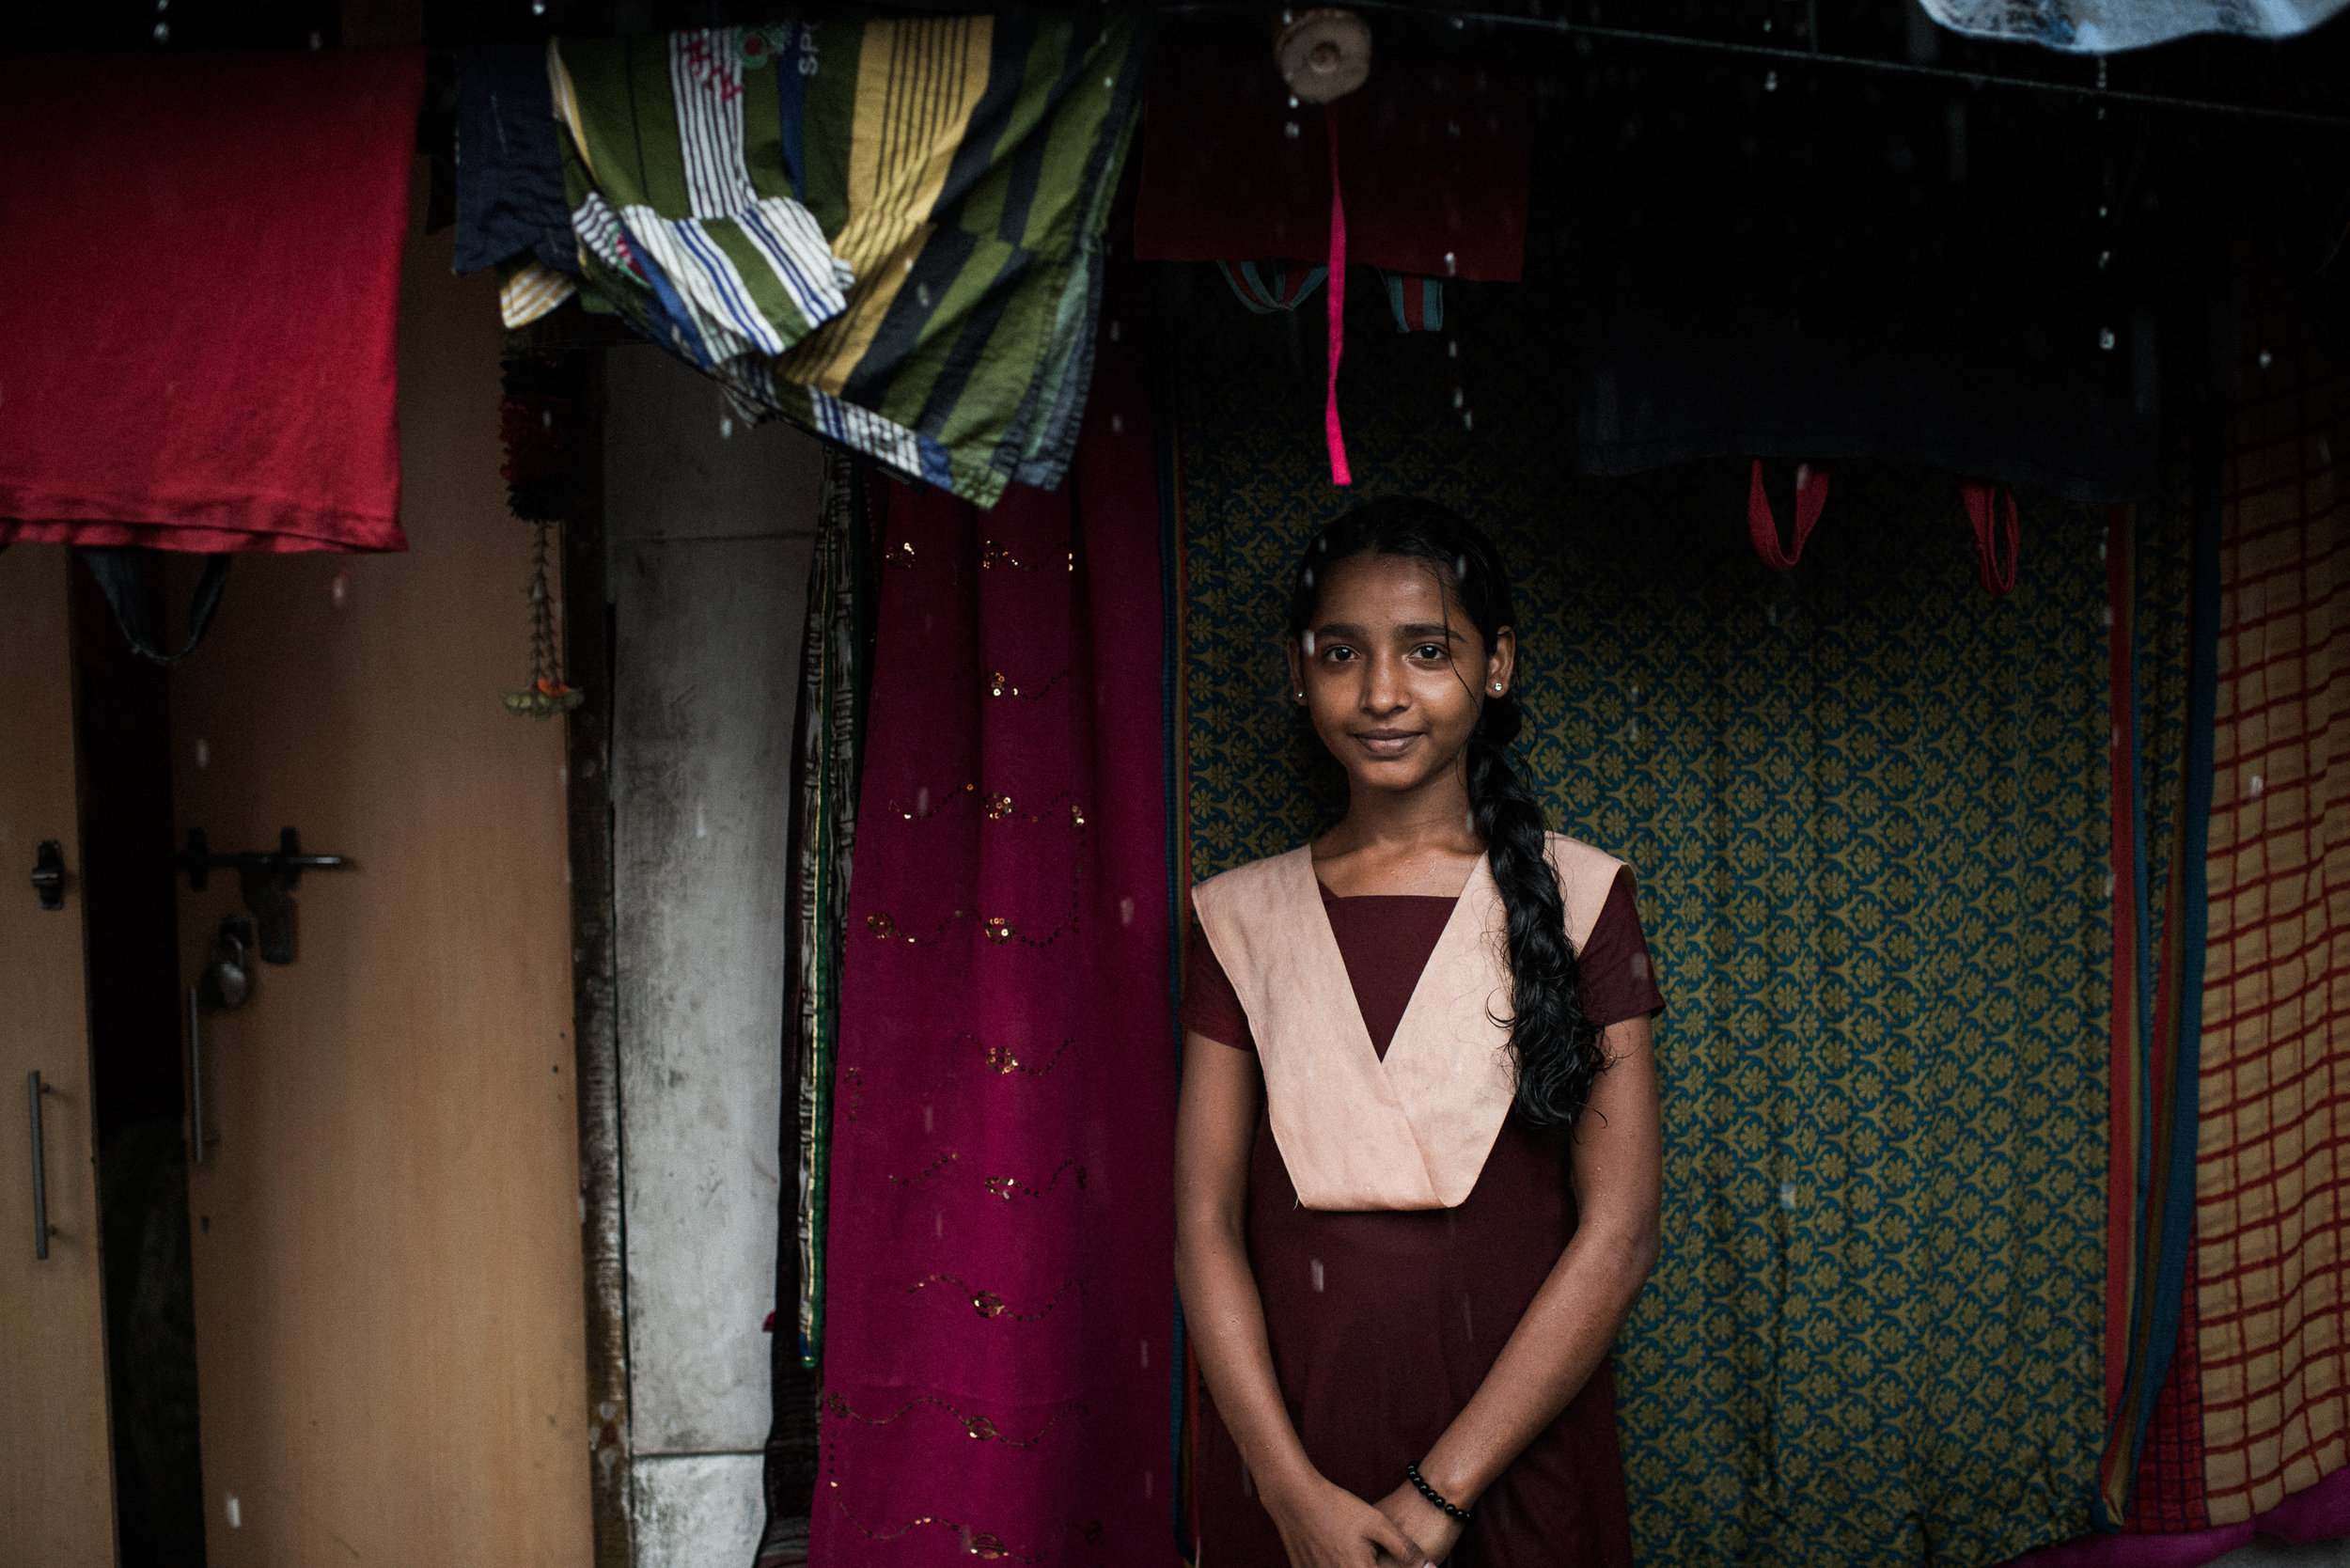 Chennai_India_NatGeo_Woman_Photographer_Humanitarian_020.jpg